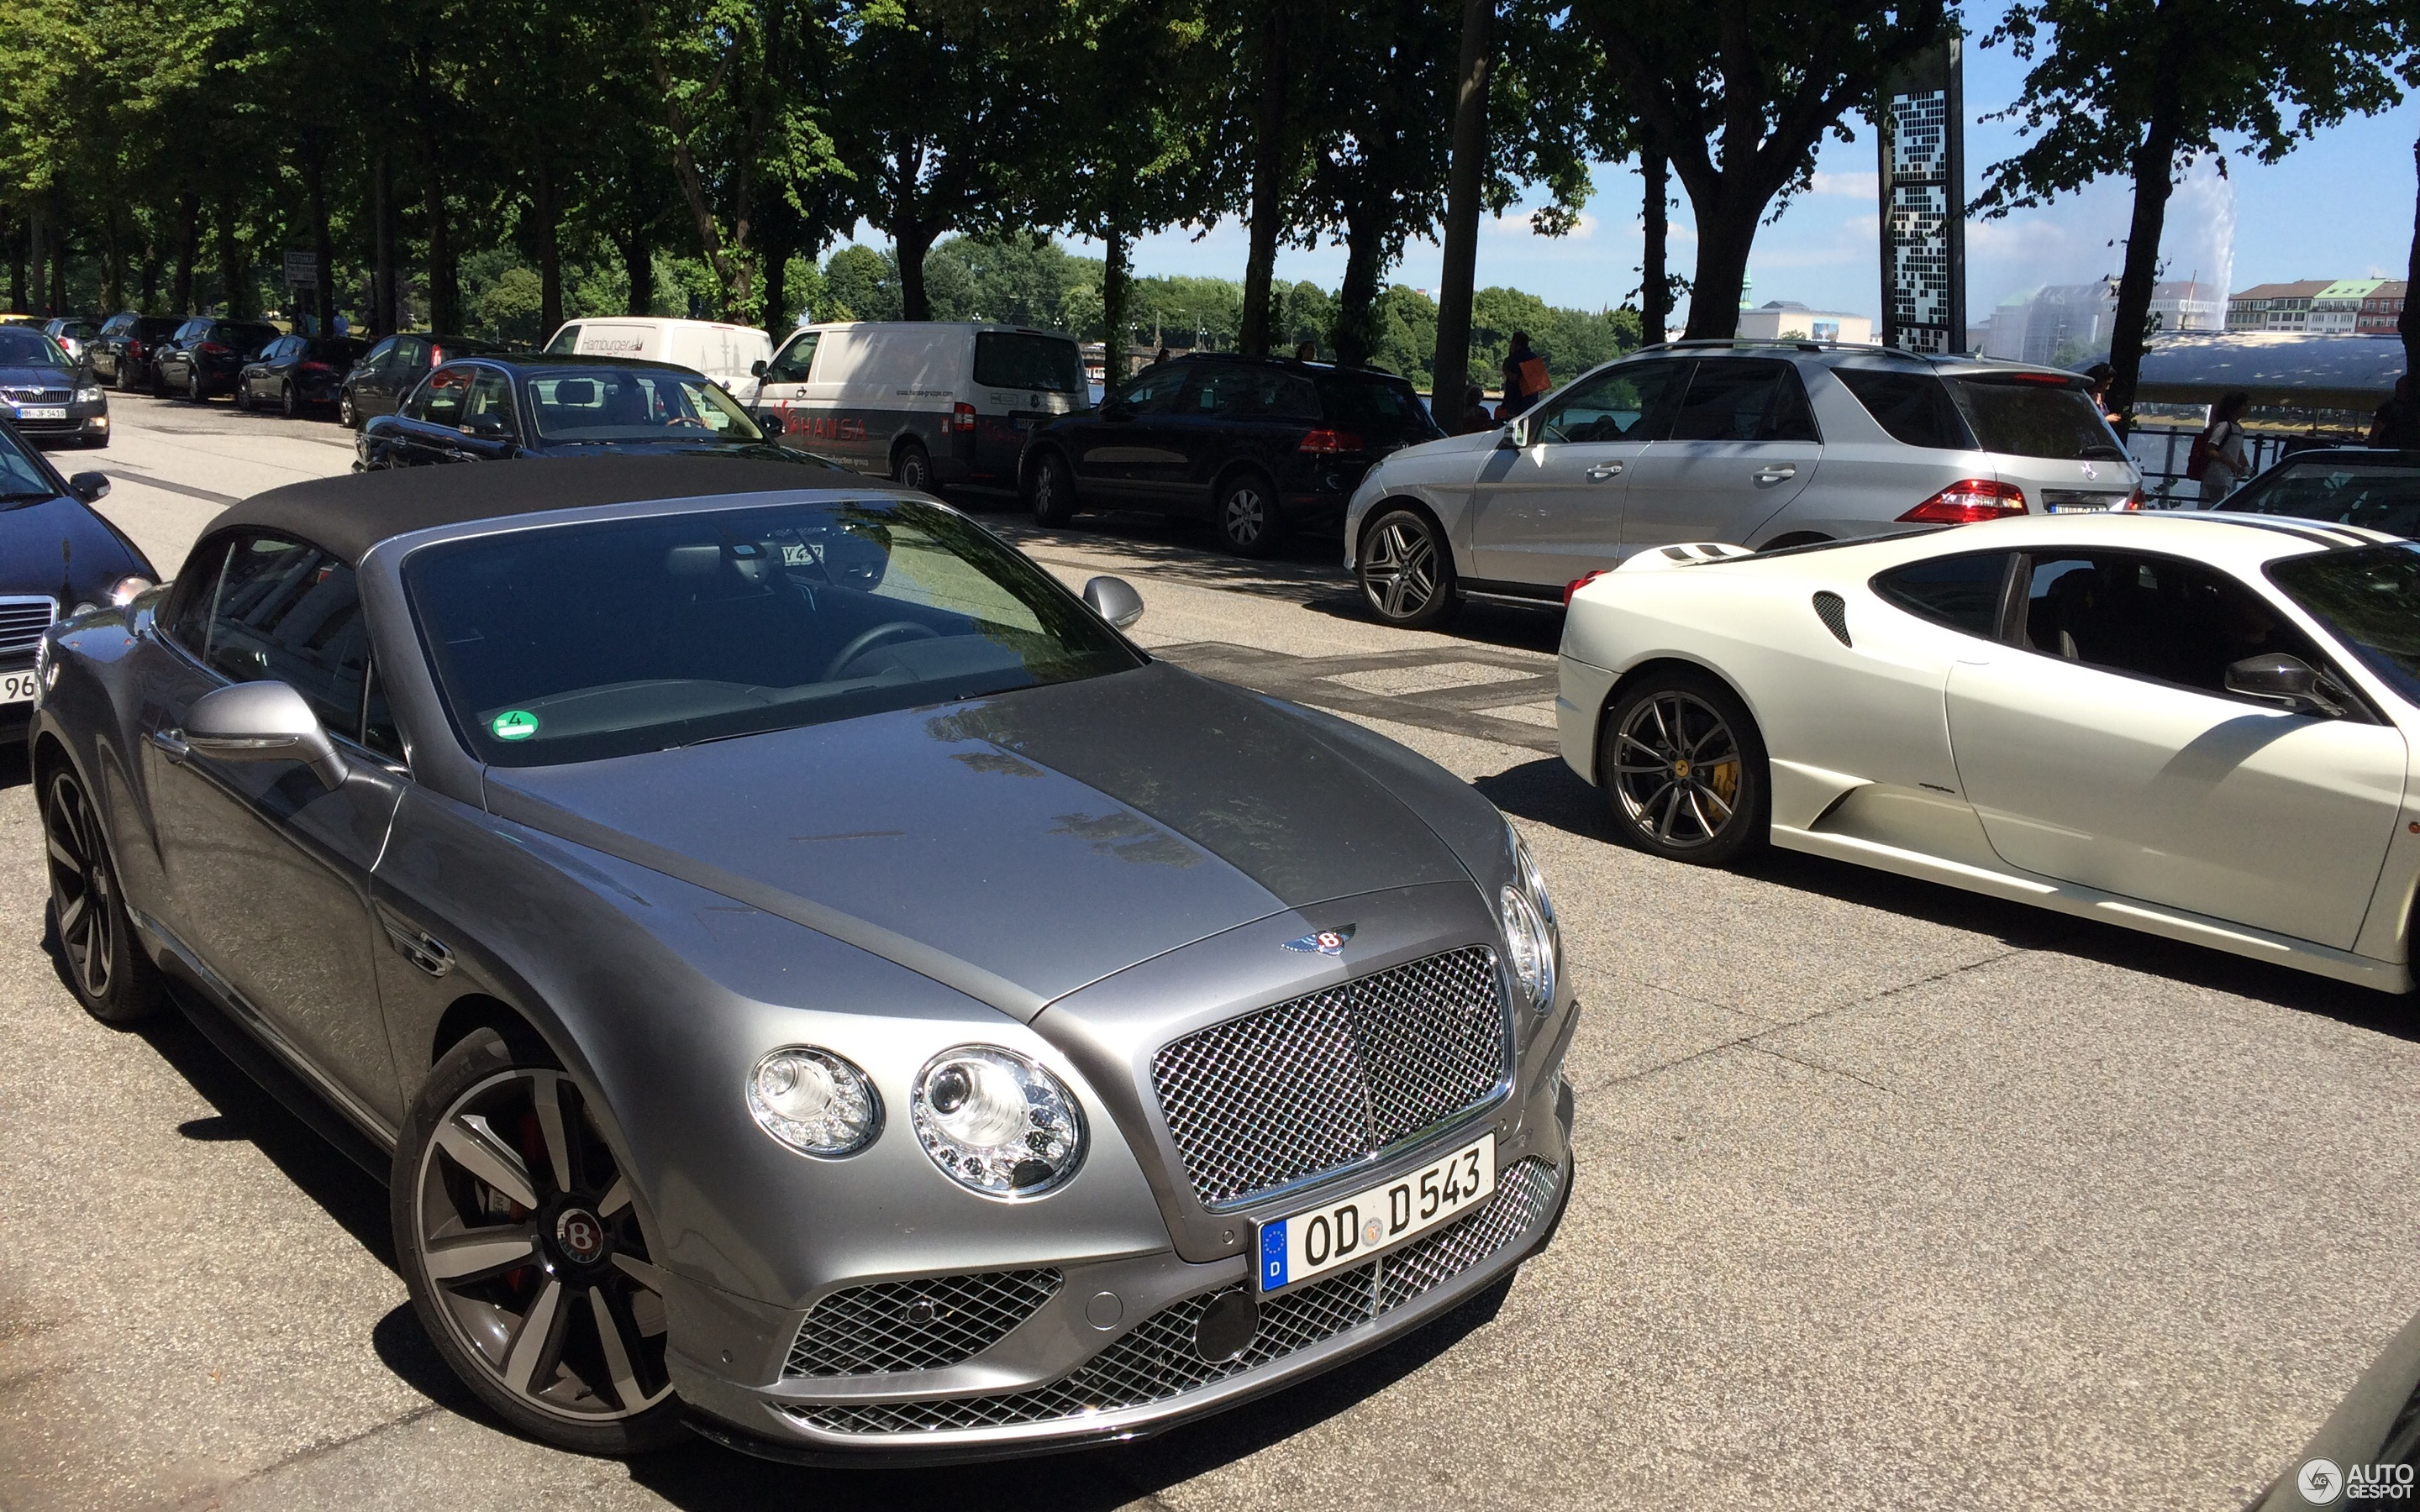 Bentley Continental GTC V8 S 2016 23 June 2016 Autogespot